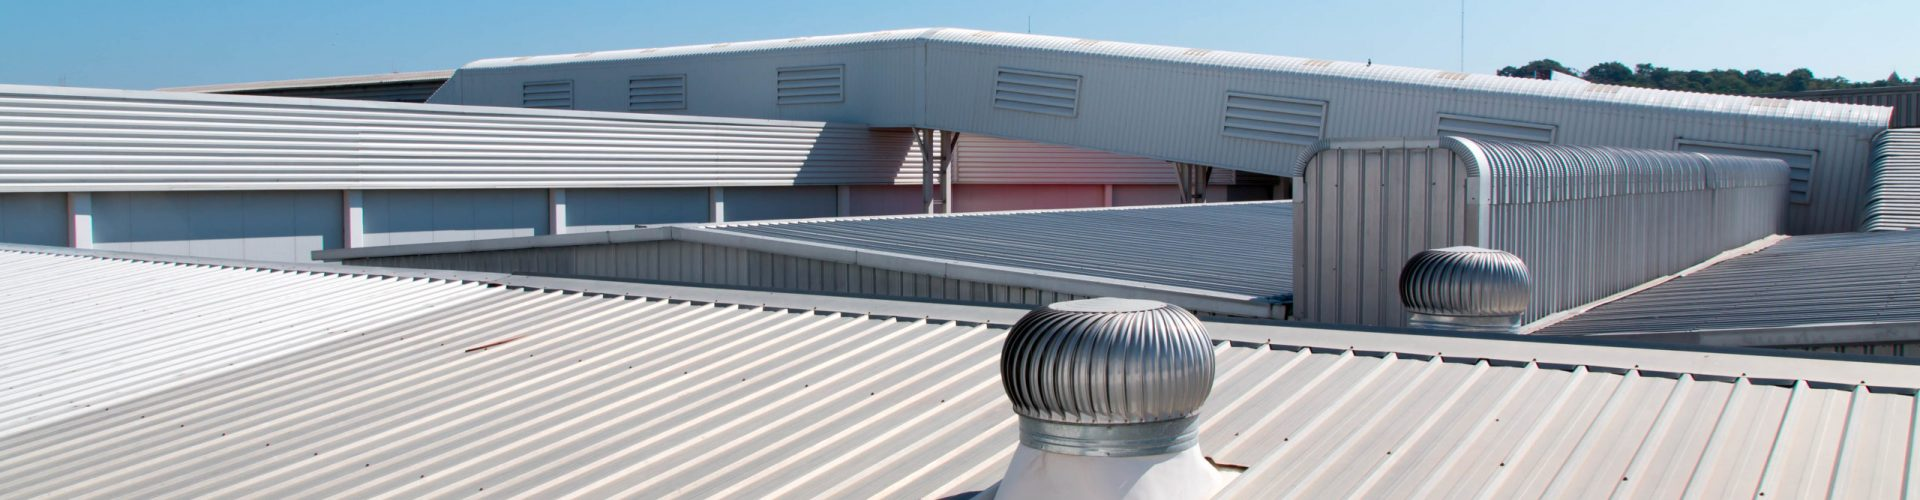 roof inspections in el paso